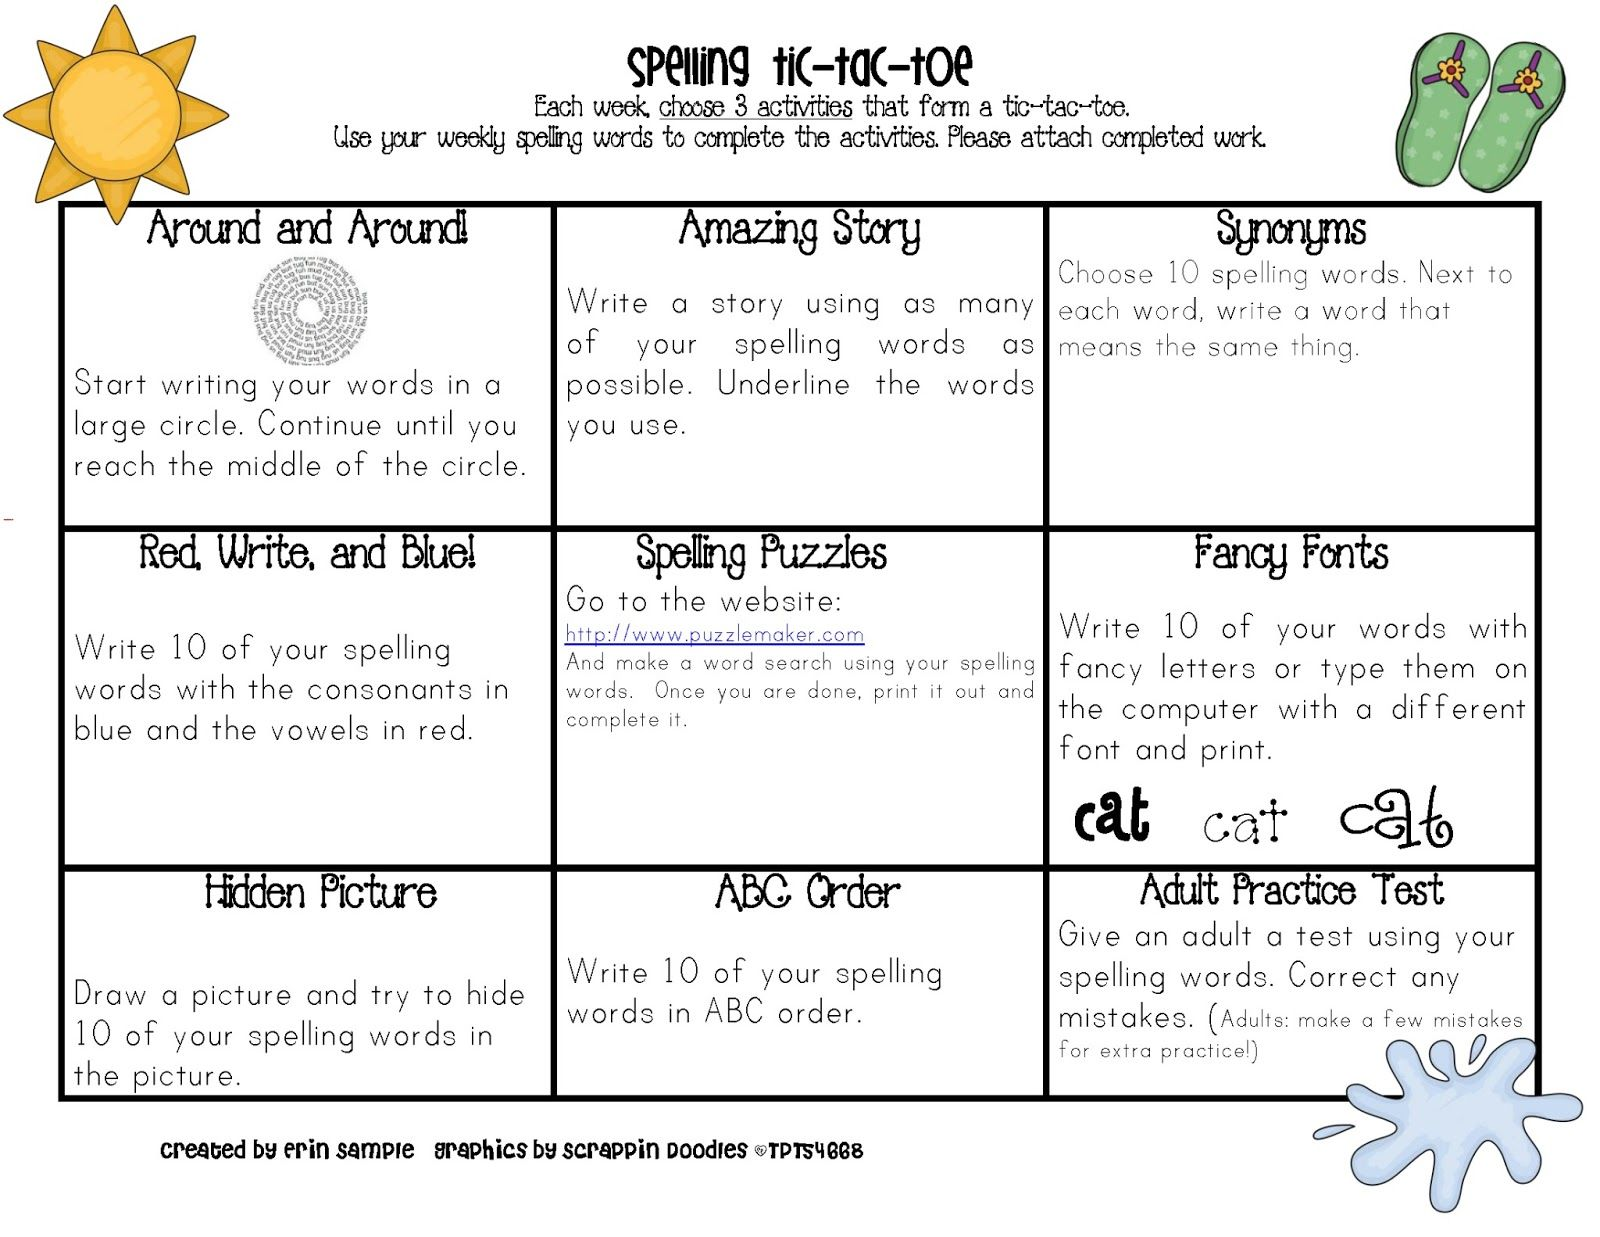 Spelling Tic Tac Toe All Year One For Each Month Promotes Choice Parent Involvement And